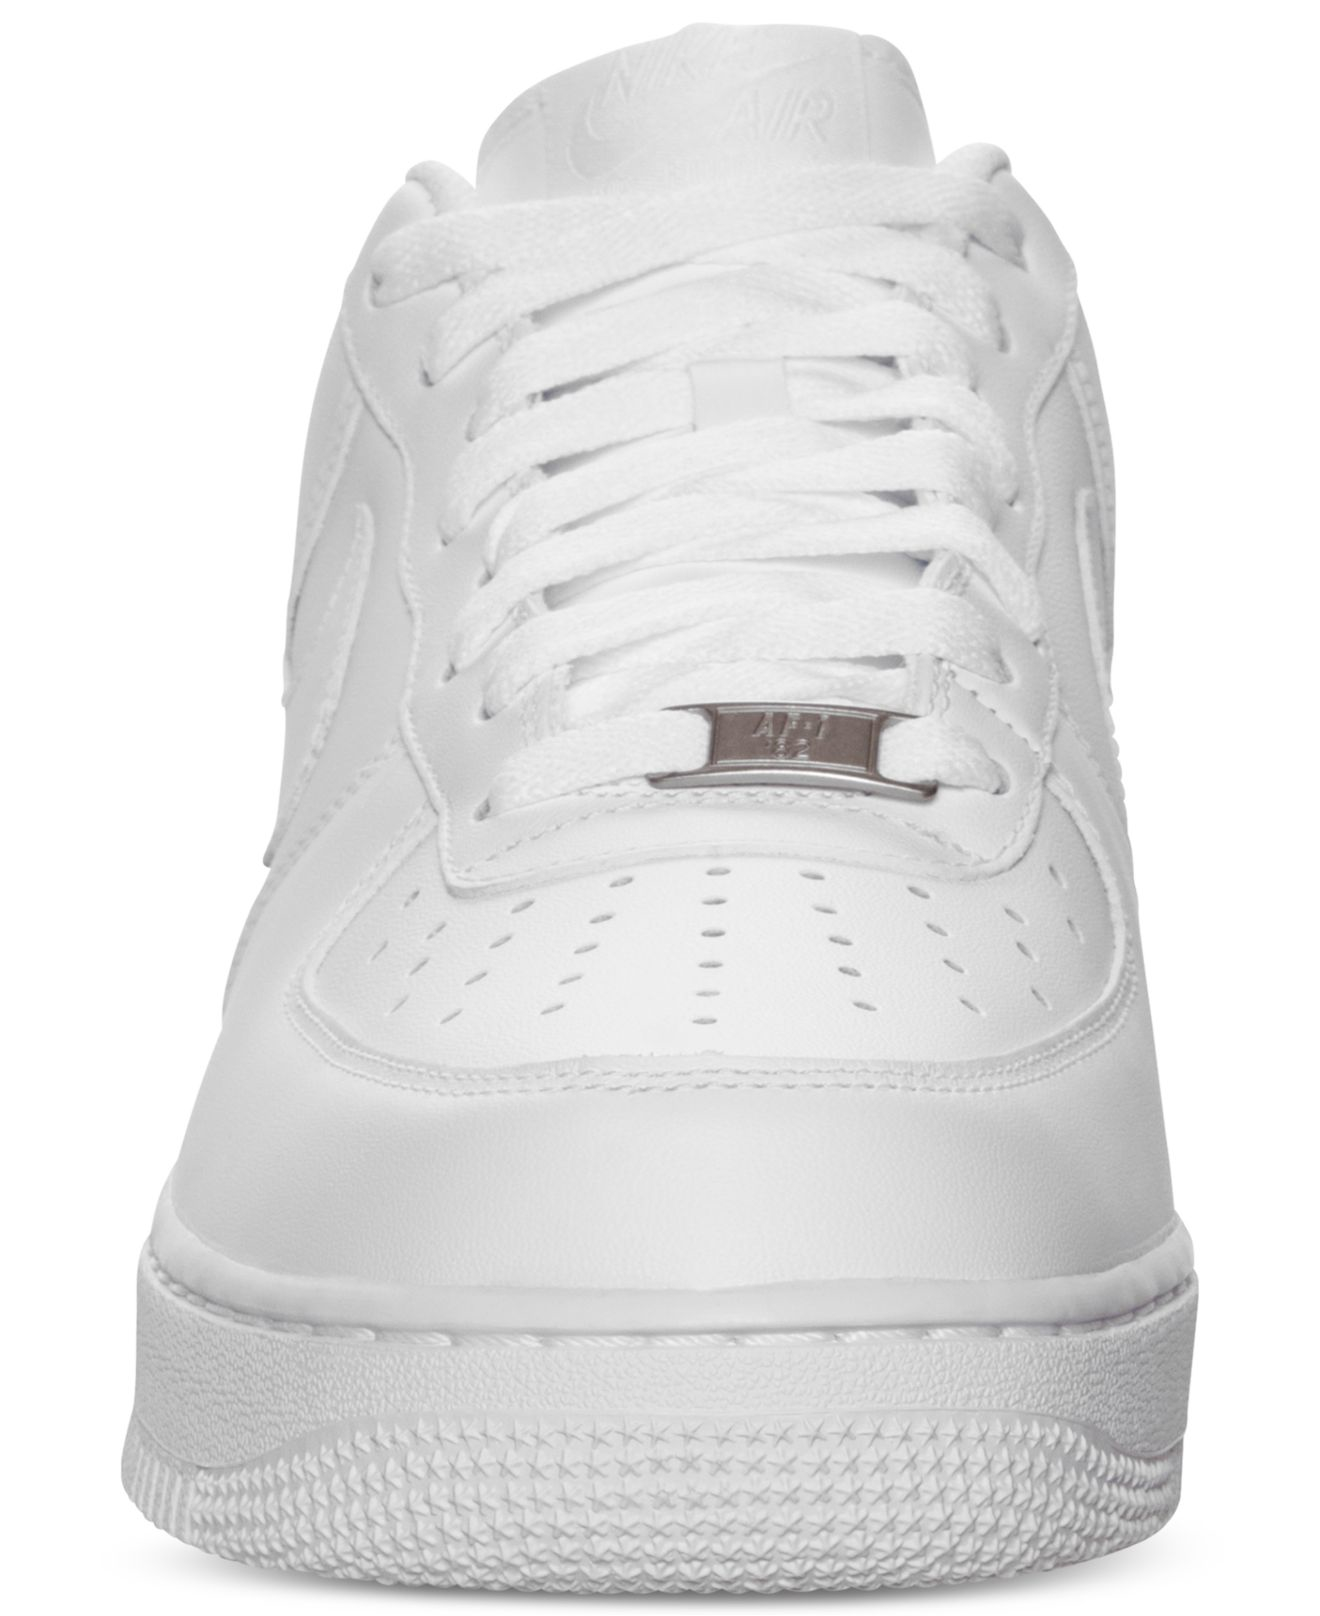 Lyst - Nike Men s Air Force 1 Low Casual Sneakers From Finish Line ... 276bbb0bdfdc